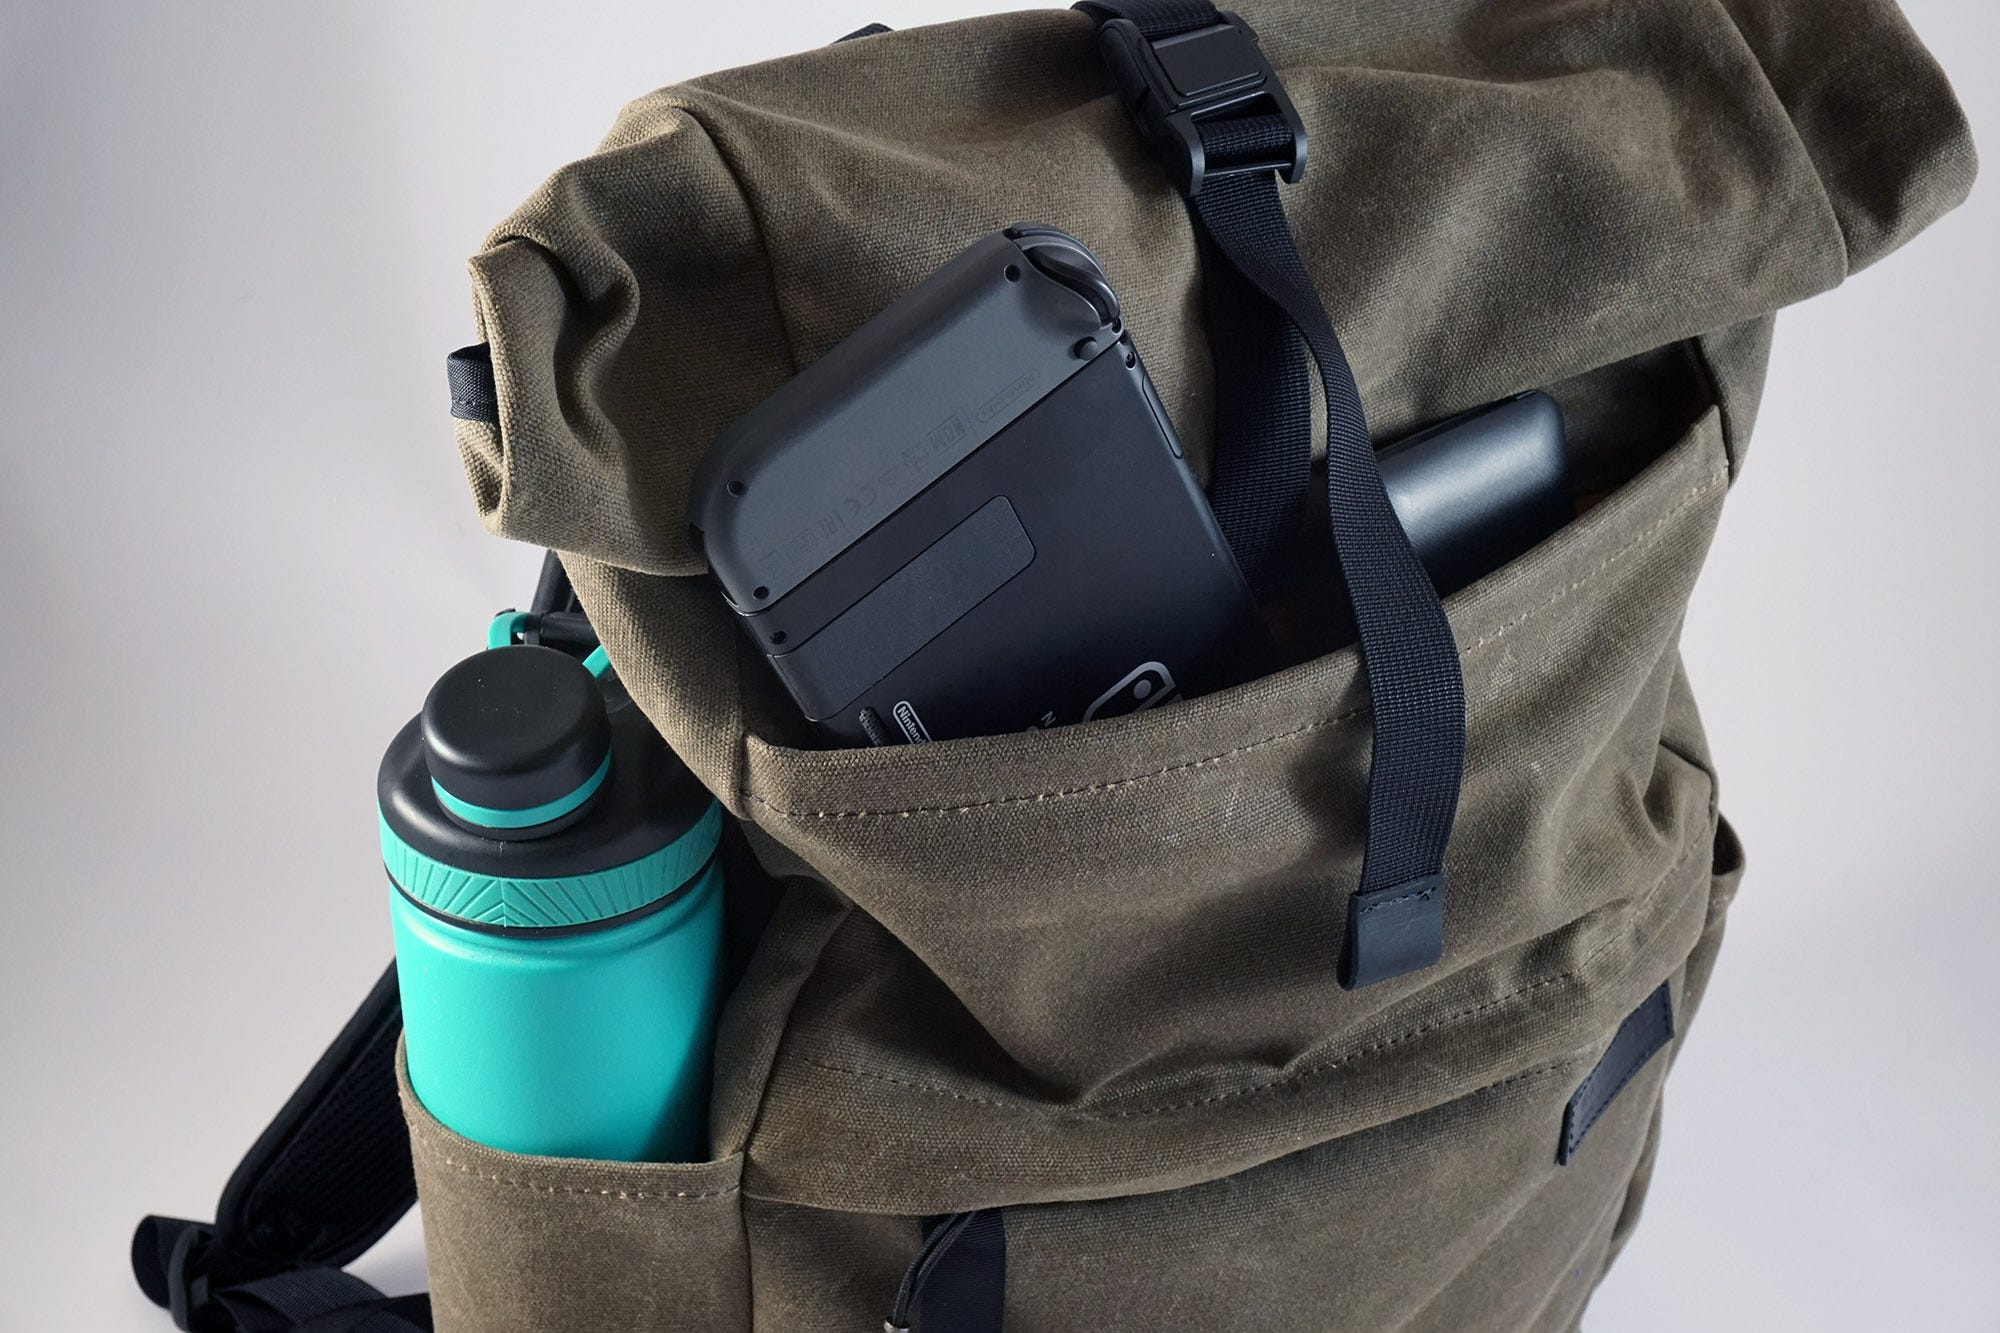 The front-top pocket closes with a magnetic snap, allowing easy access to important stuff.